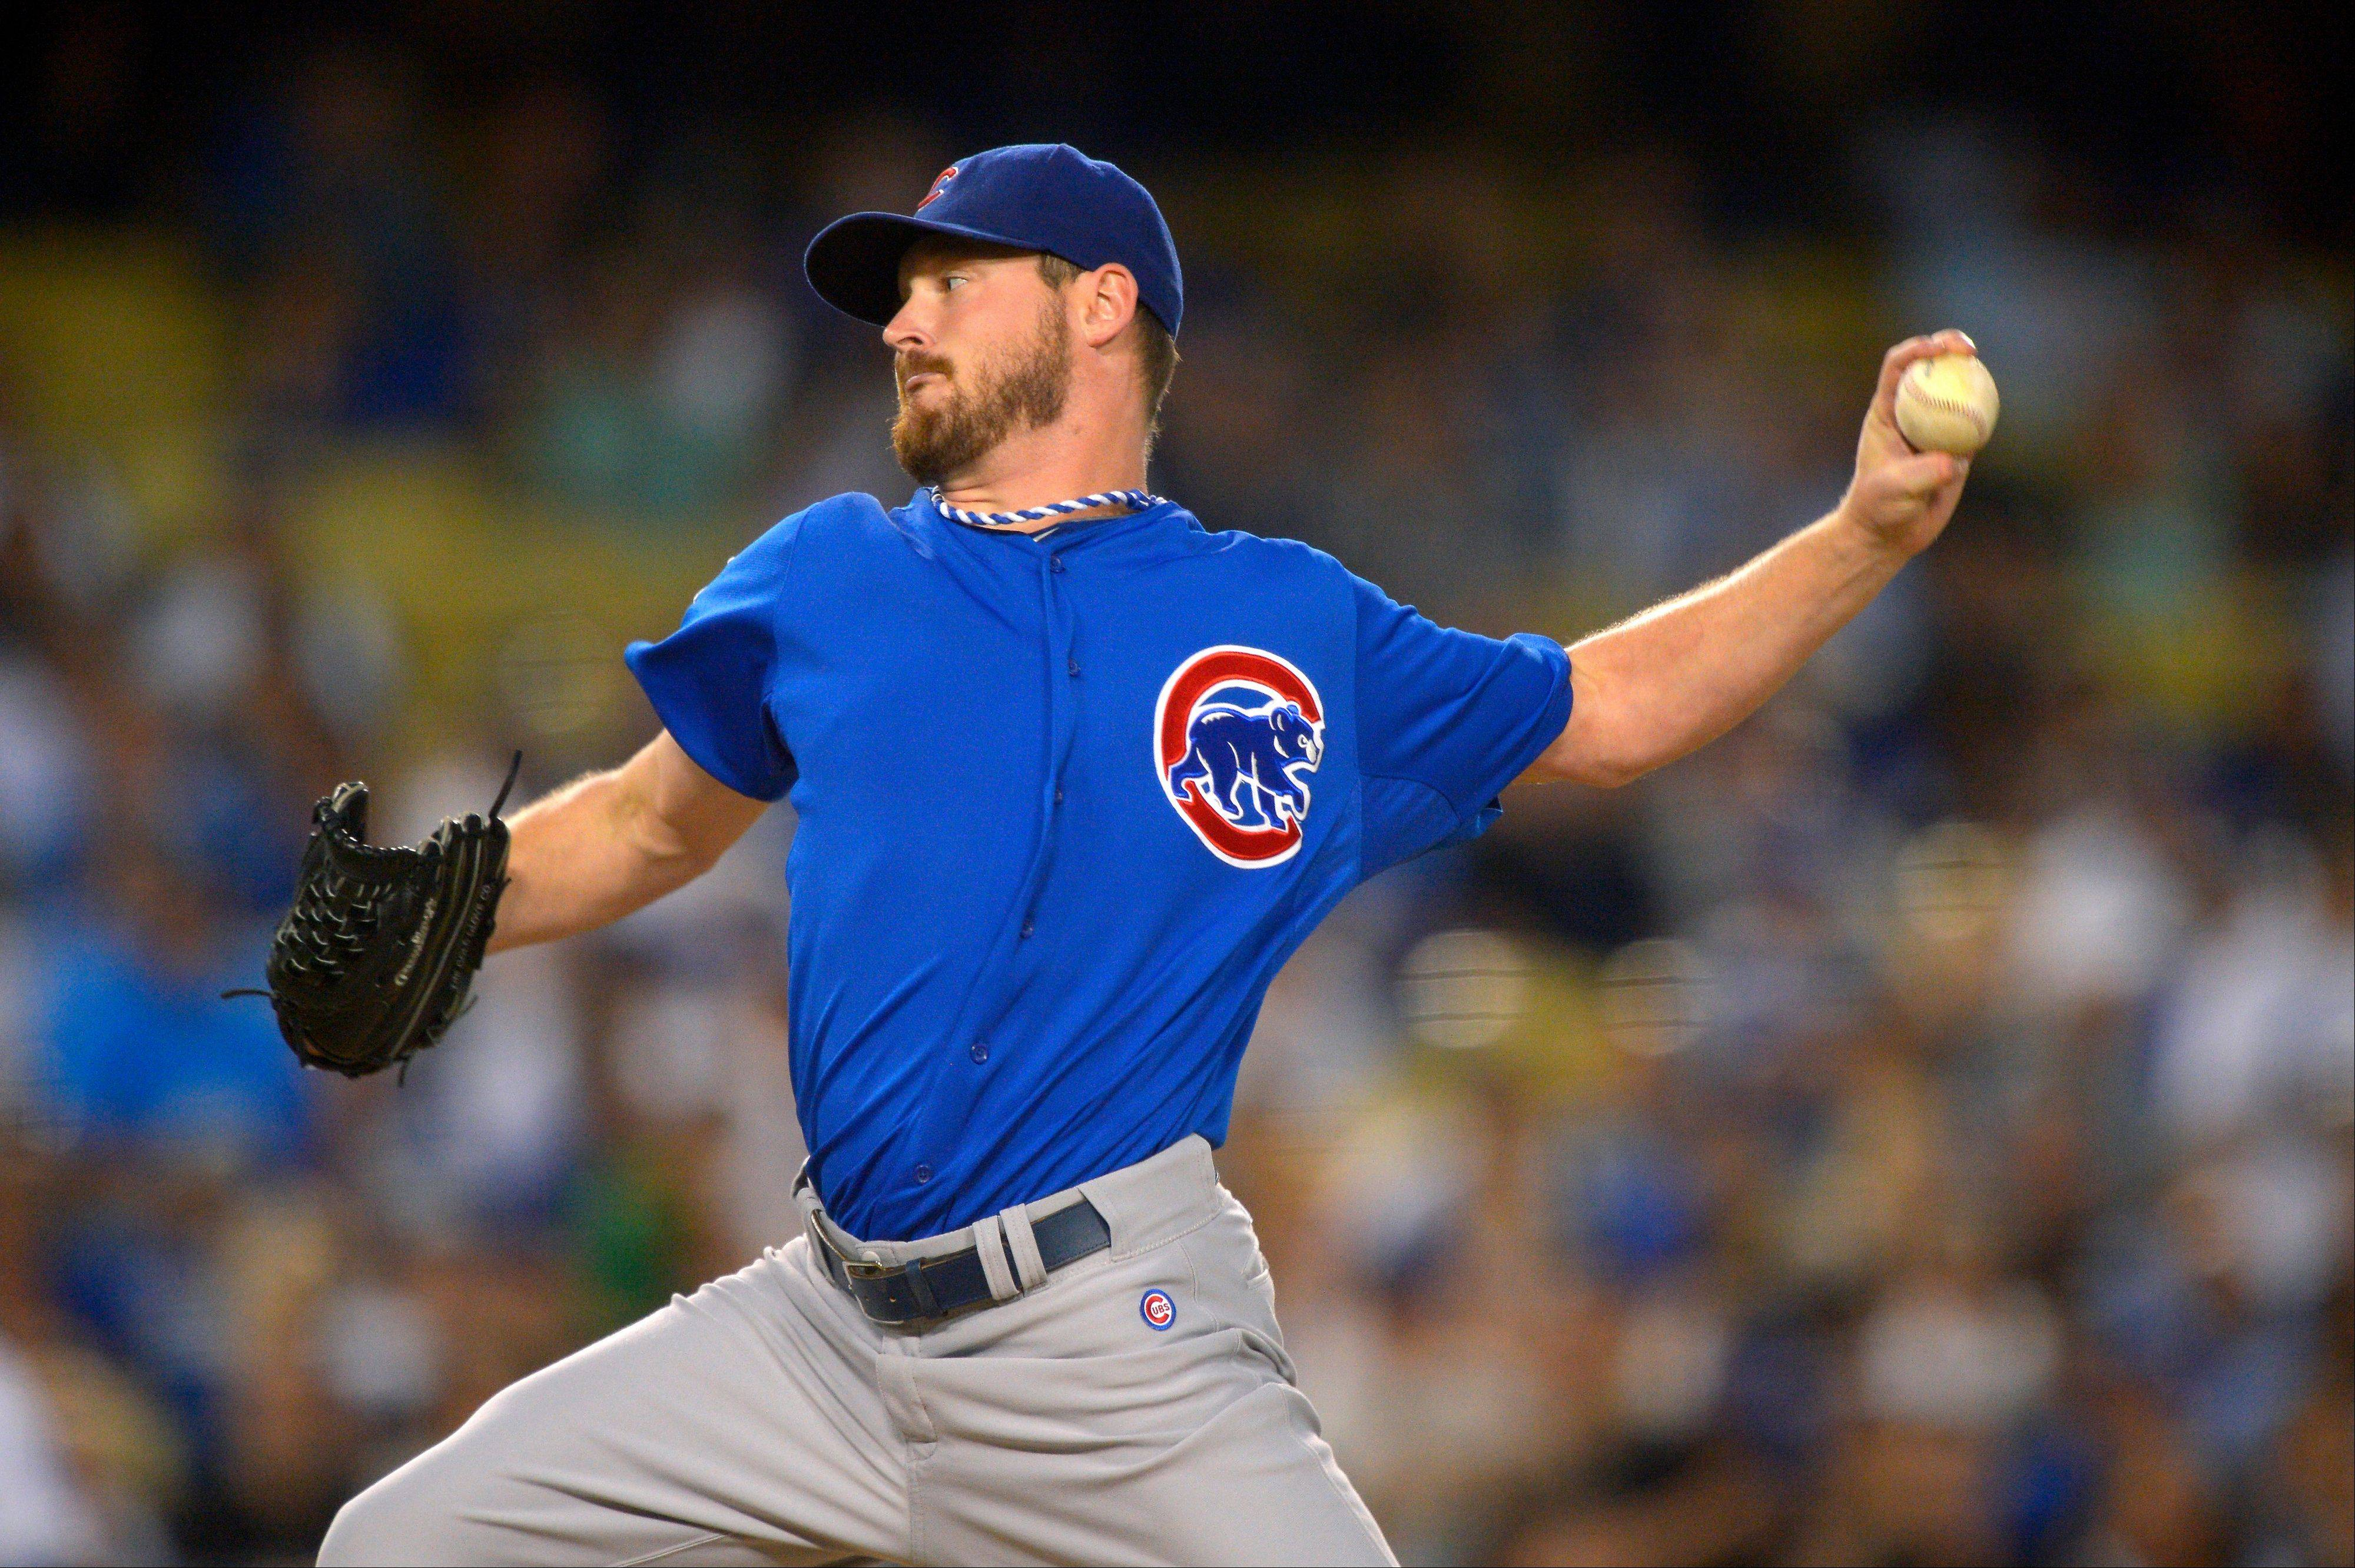 Chicago Cubs starting pitcher Travis Wood throws to the plate during the first inning of their baseball game against the Los Angeles Dodgers, Tuesday, Aug. 27, 2013, in Los Angeles. (AP Photo/Mark J. Terrill)